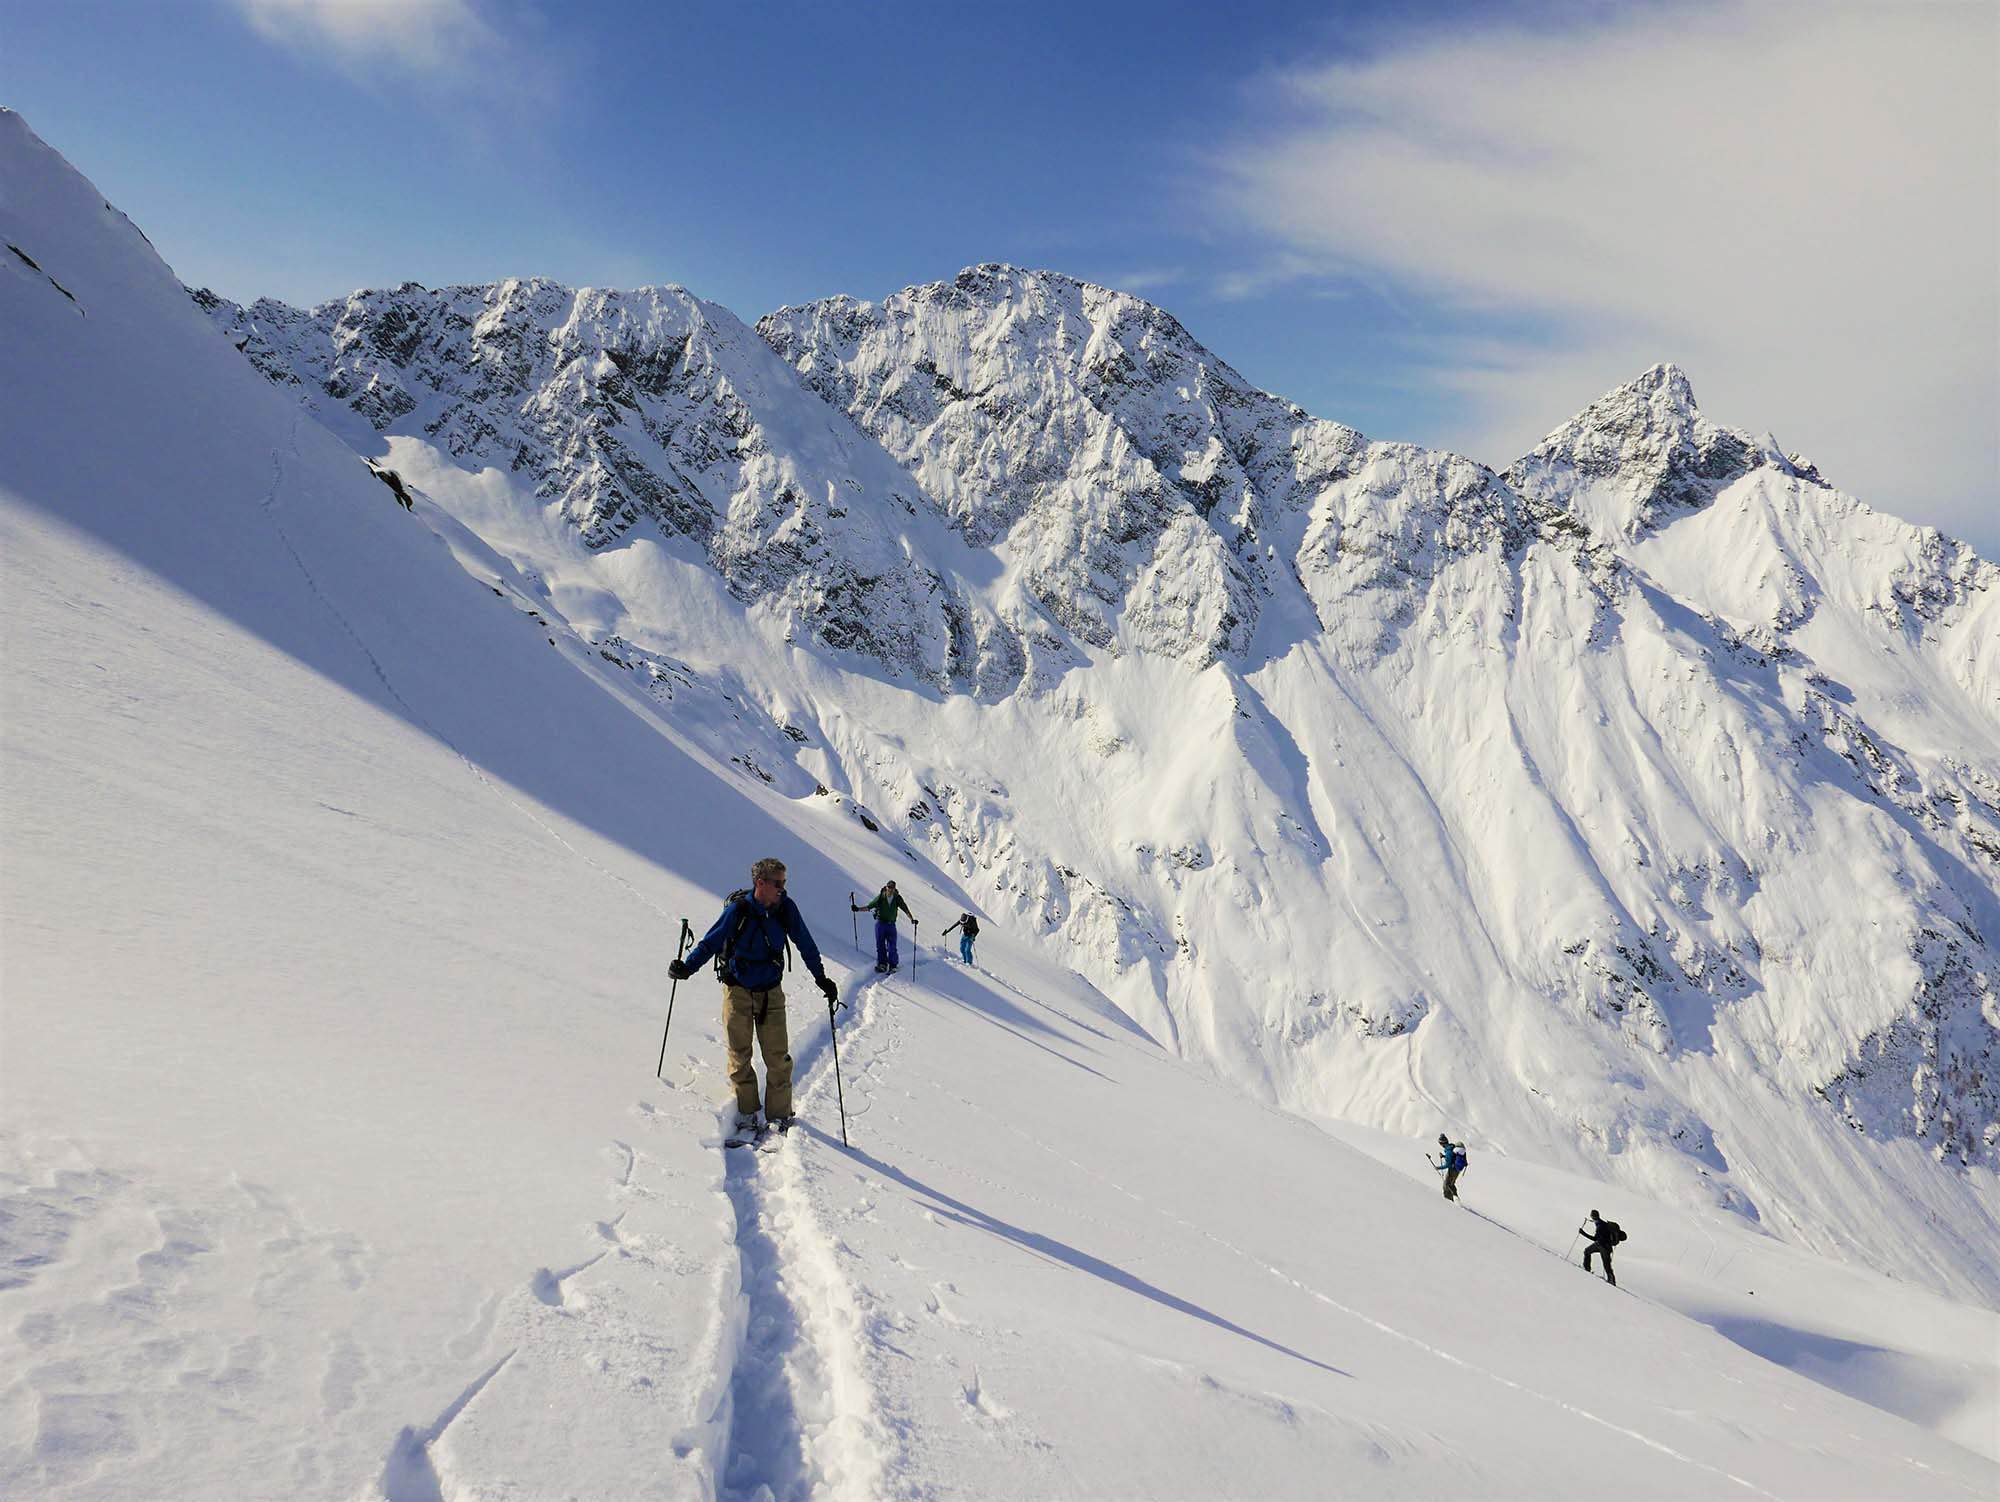 Learn to splitboard: Backcountry splitboarding holiday in Austria